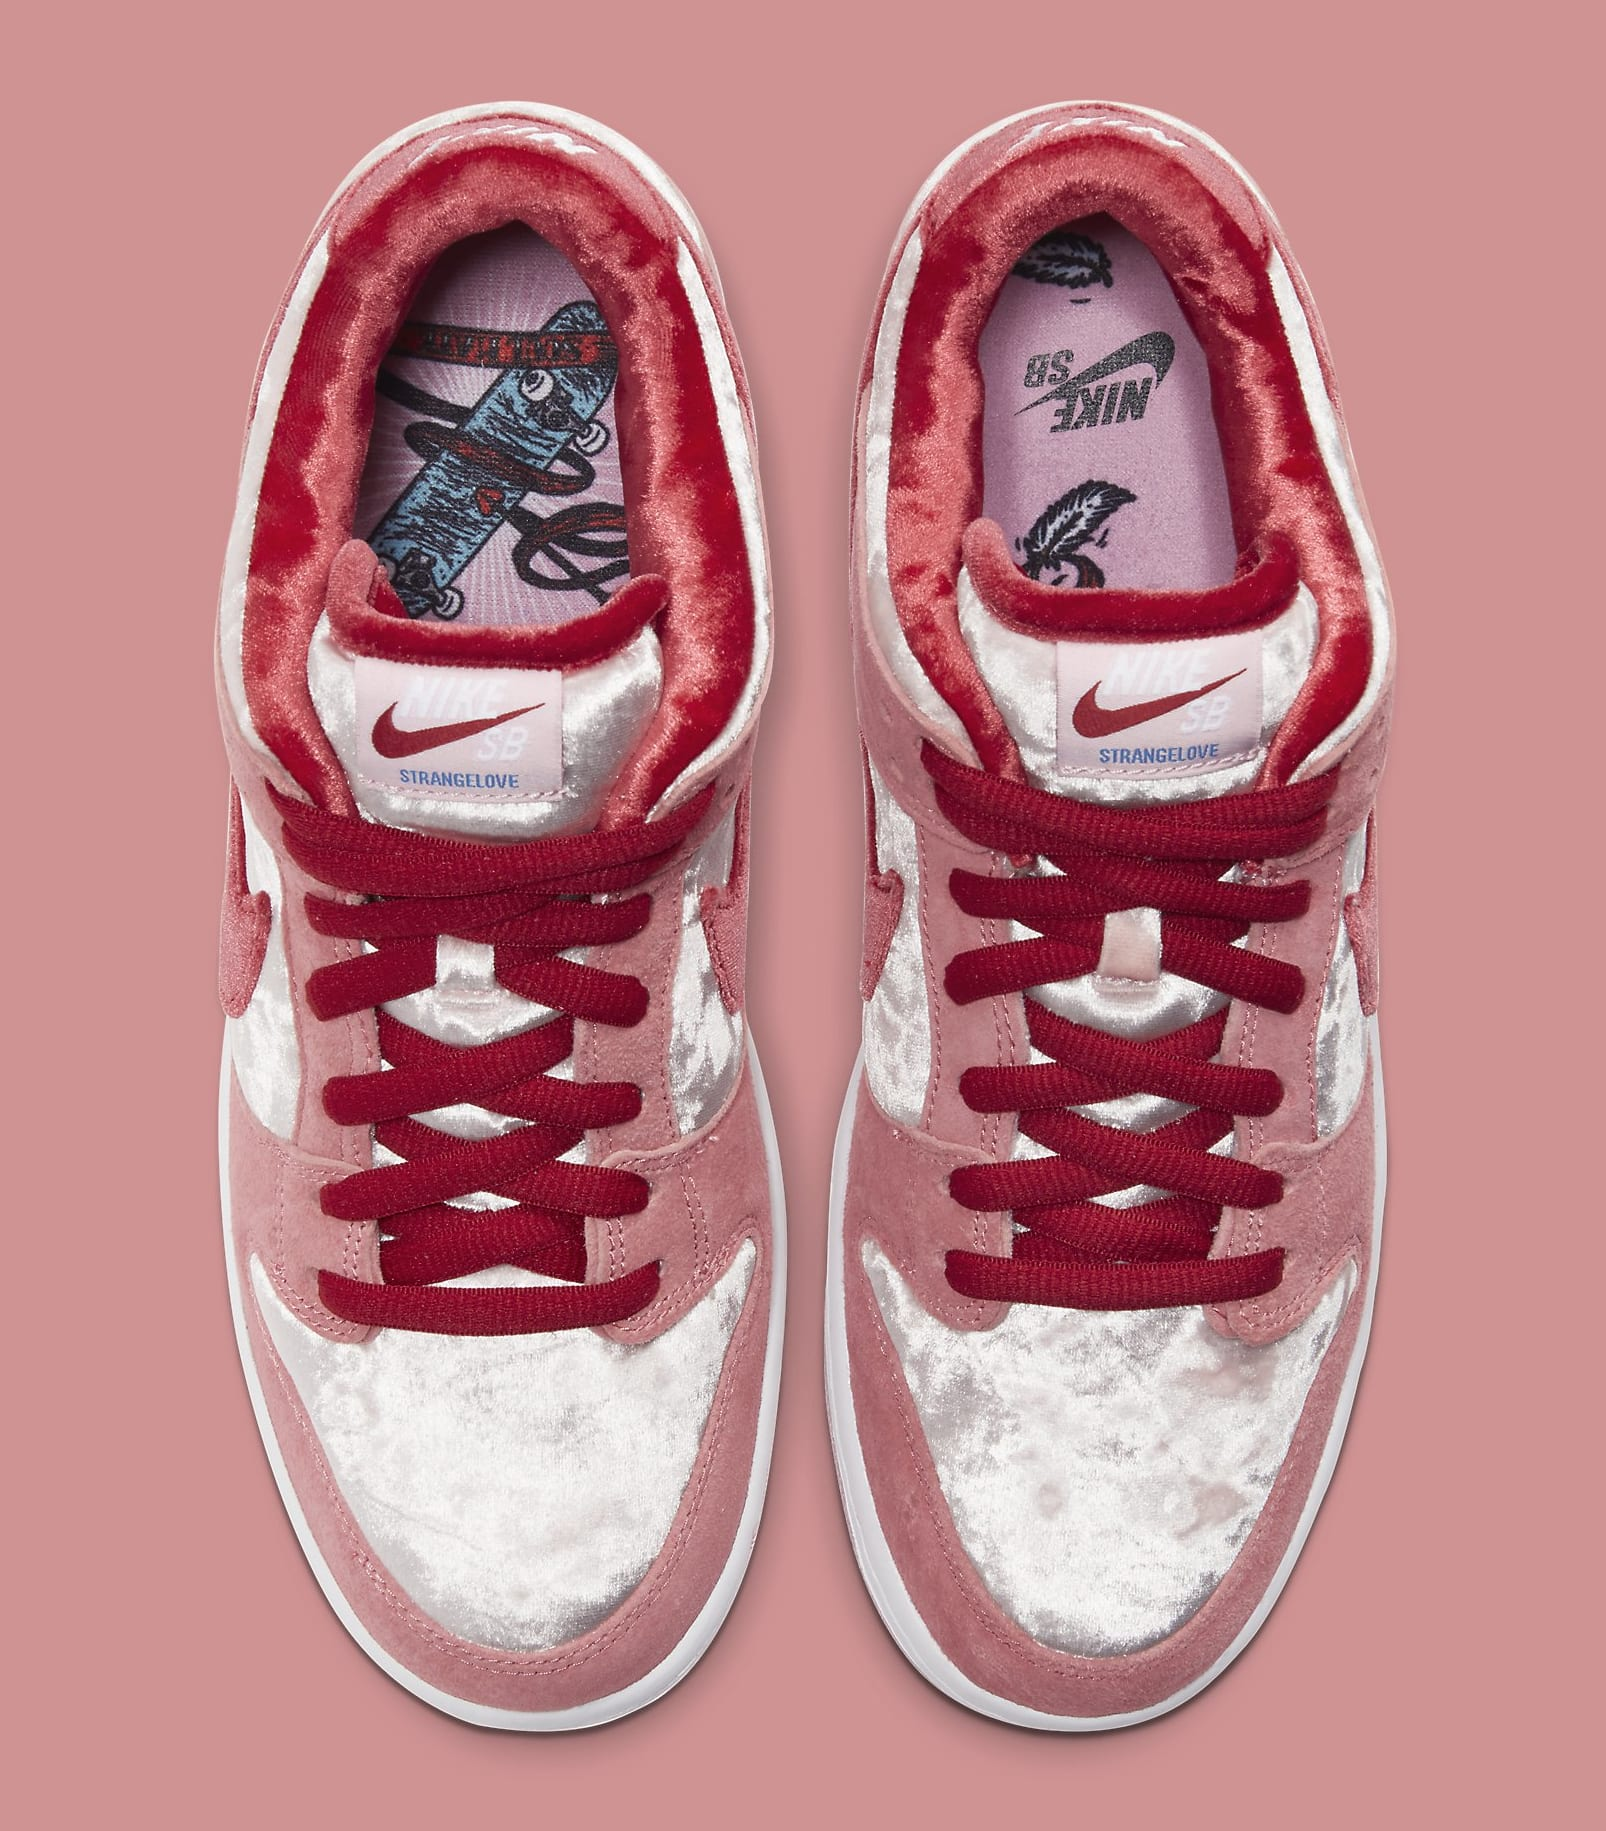 strangelove-nike-sb-dunk-low-ct2552-800-top